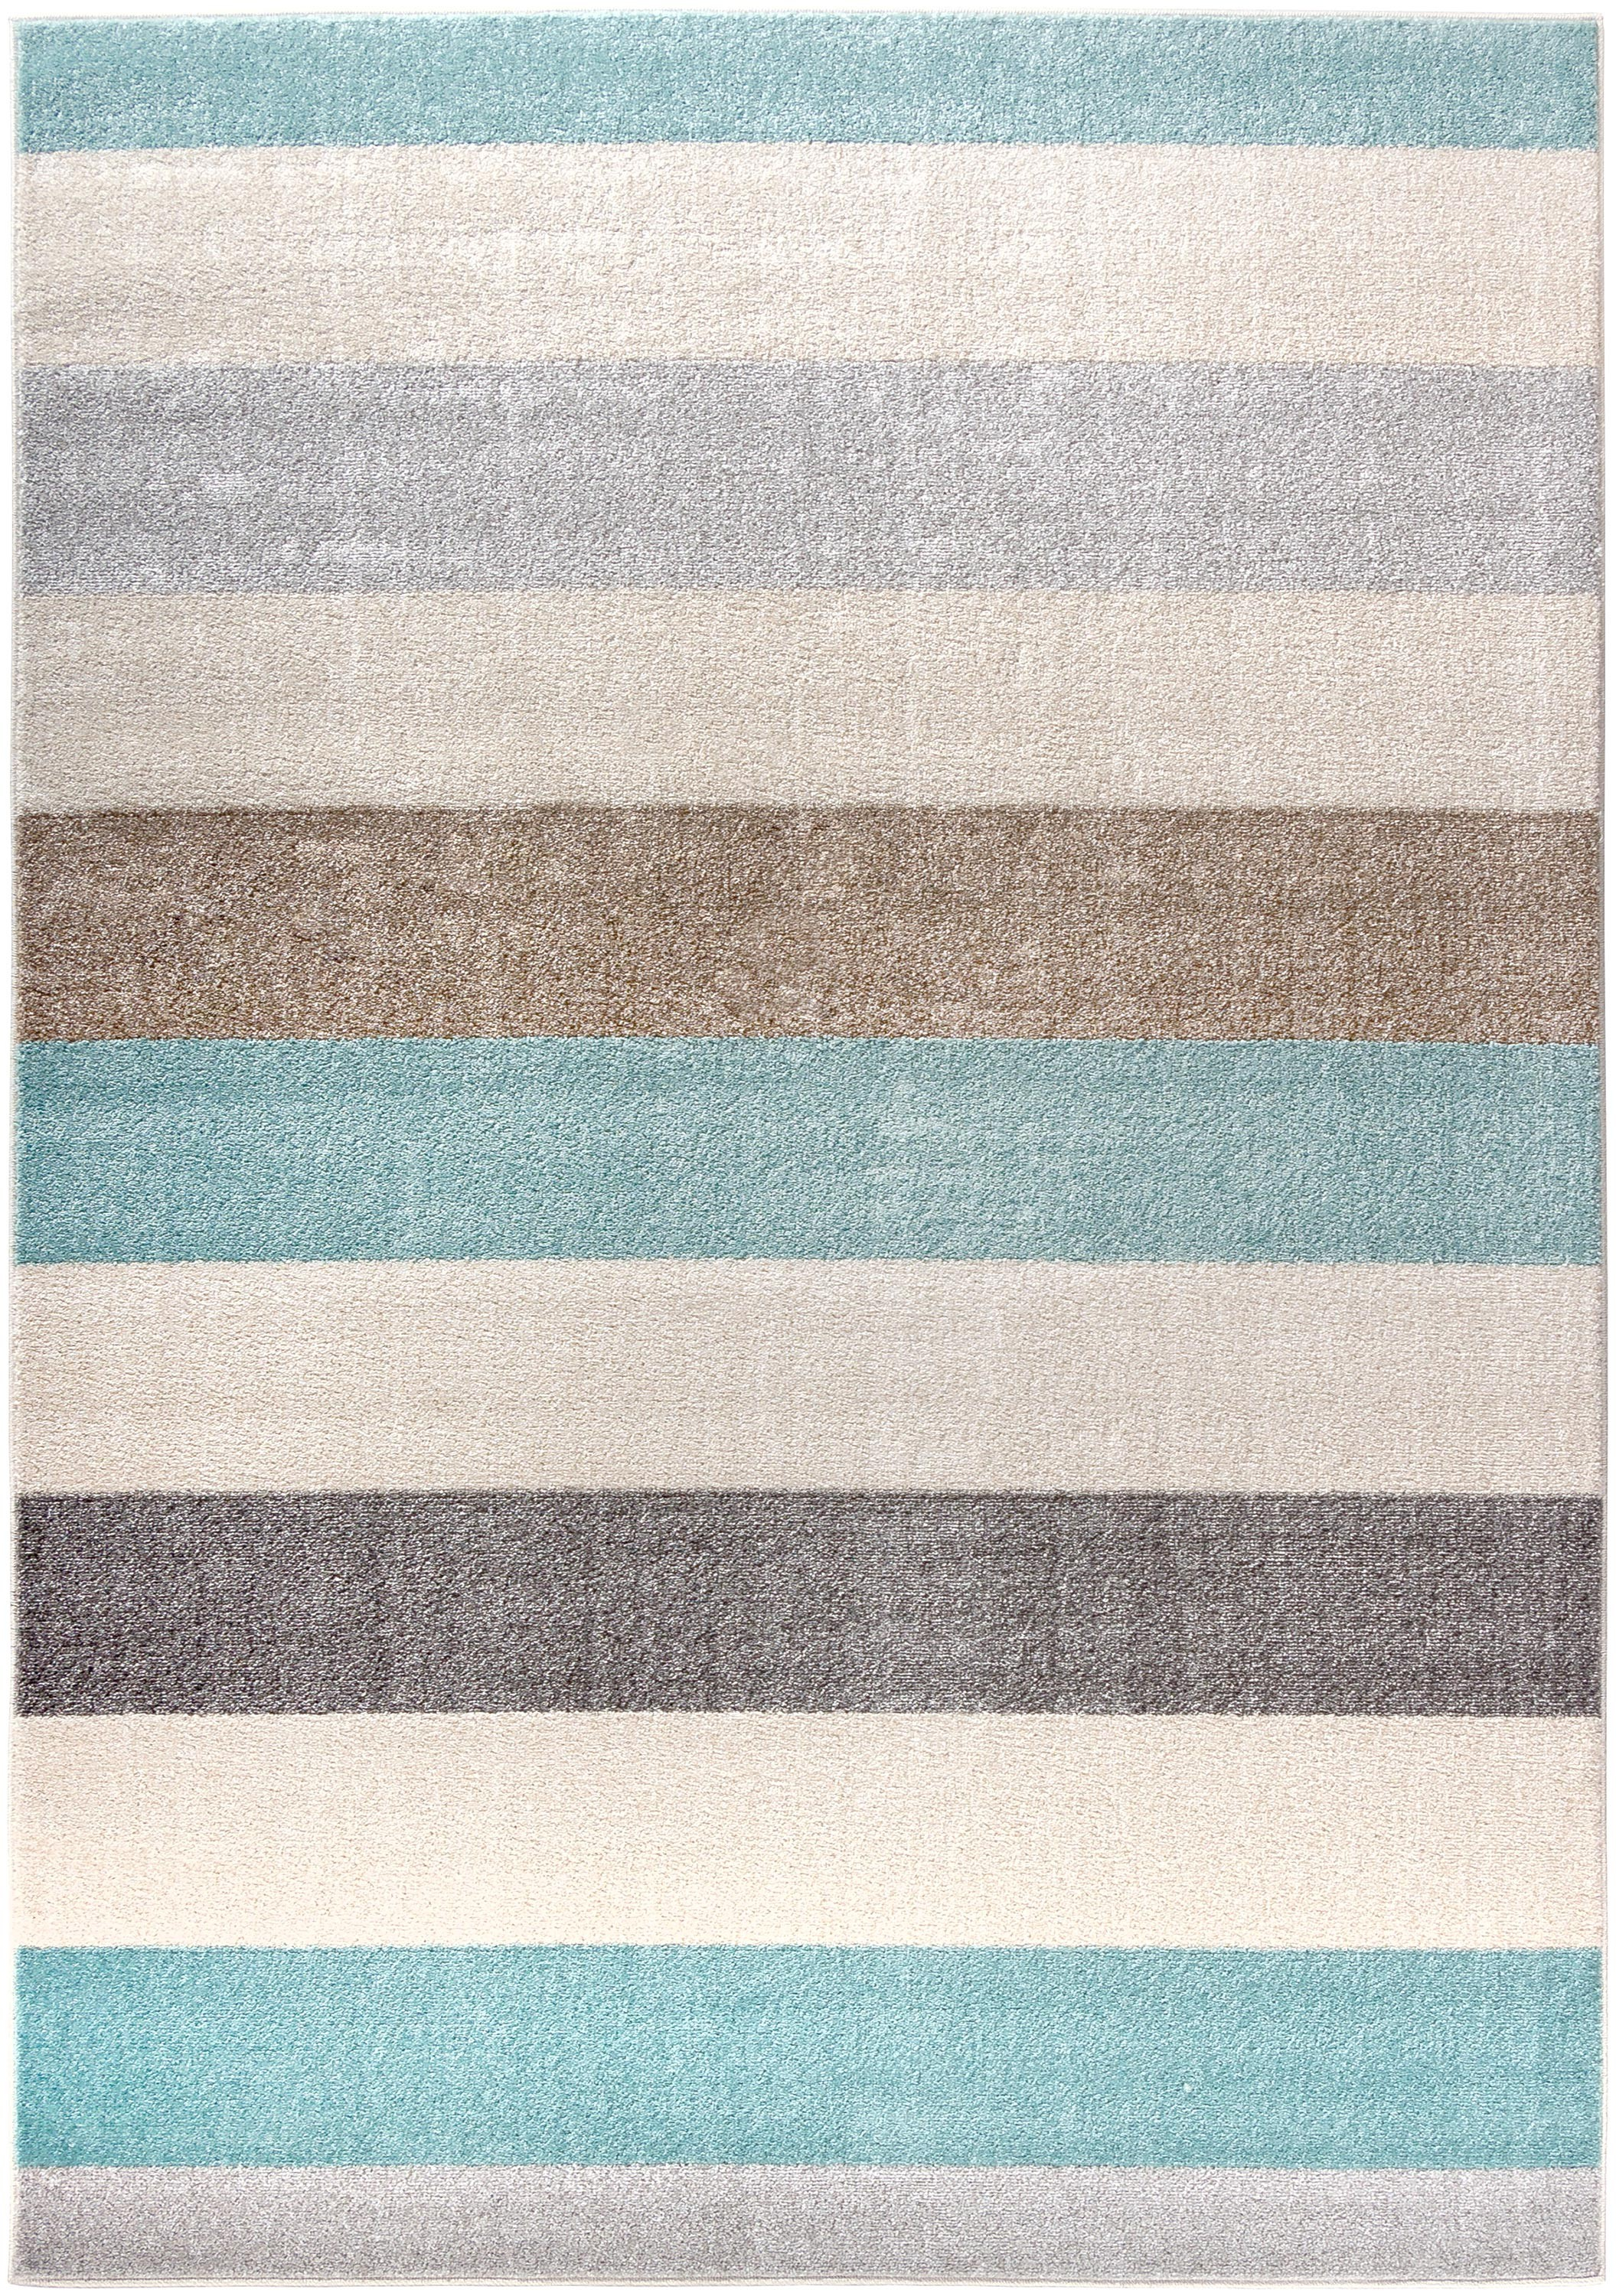 Dywan Light Collection Marine Stripes Cena Promocje